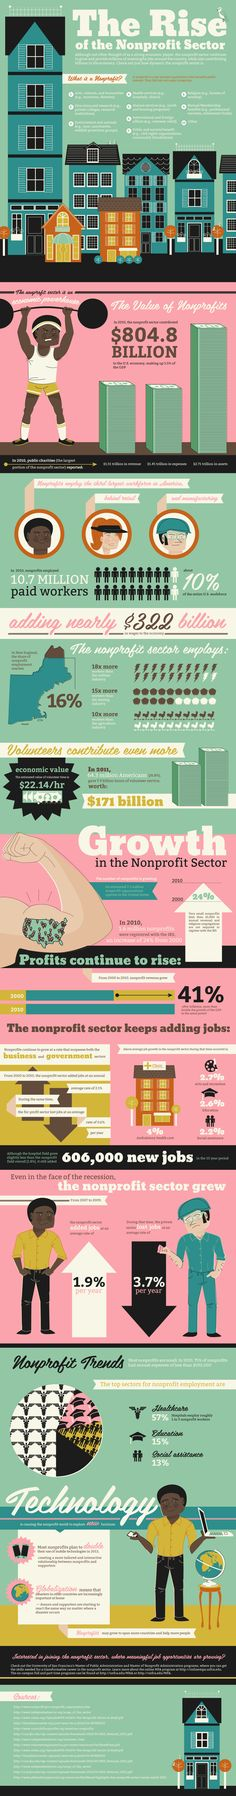 Master of Public Administration (MPA) Online Program |USFCA » infograph-rise-of-noprofit